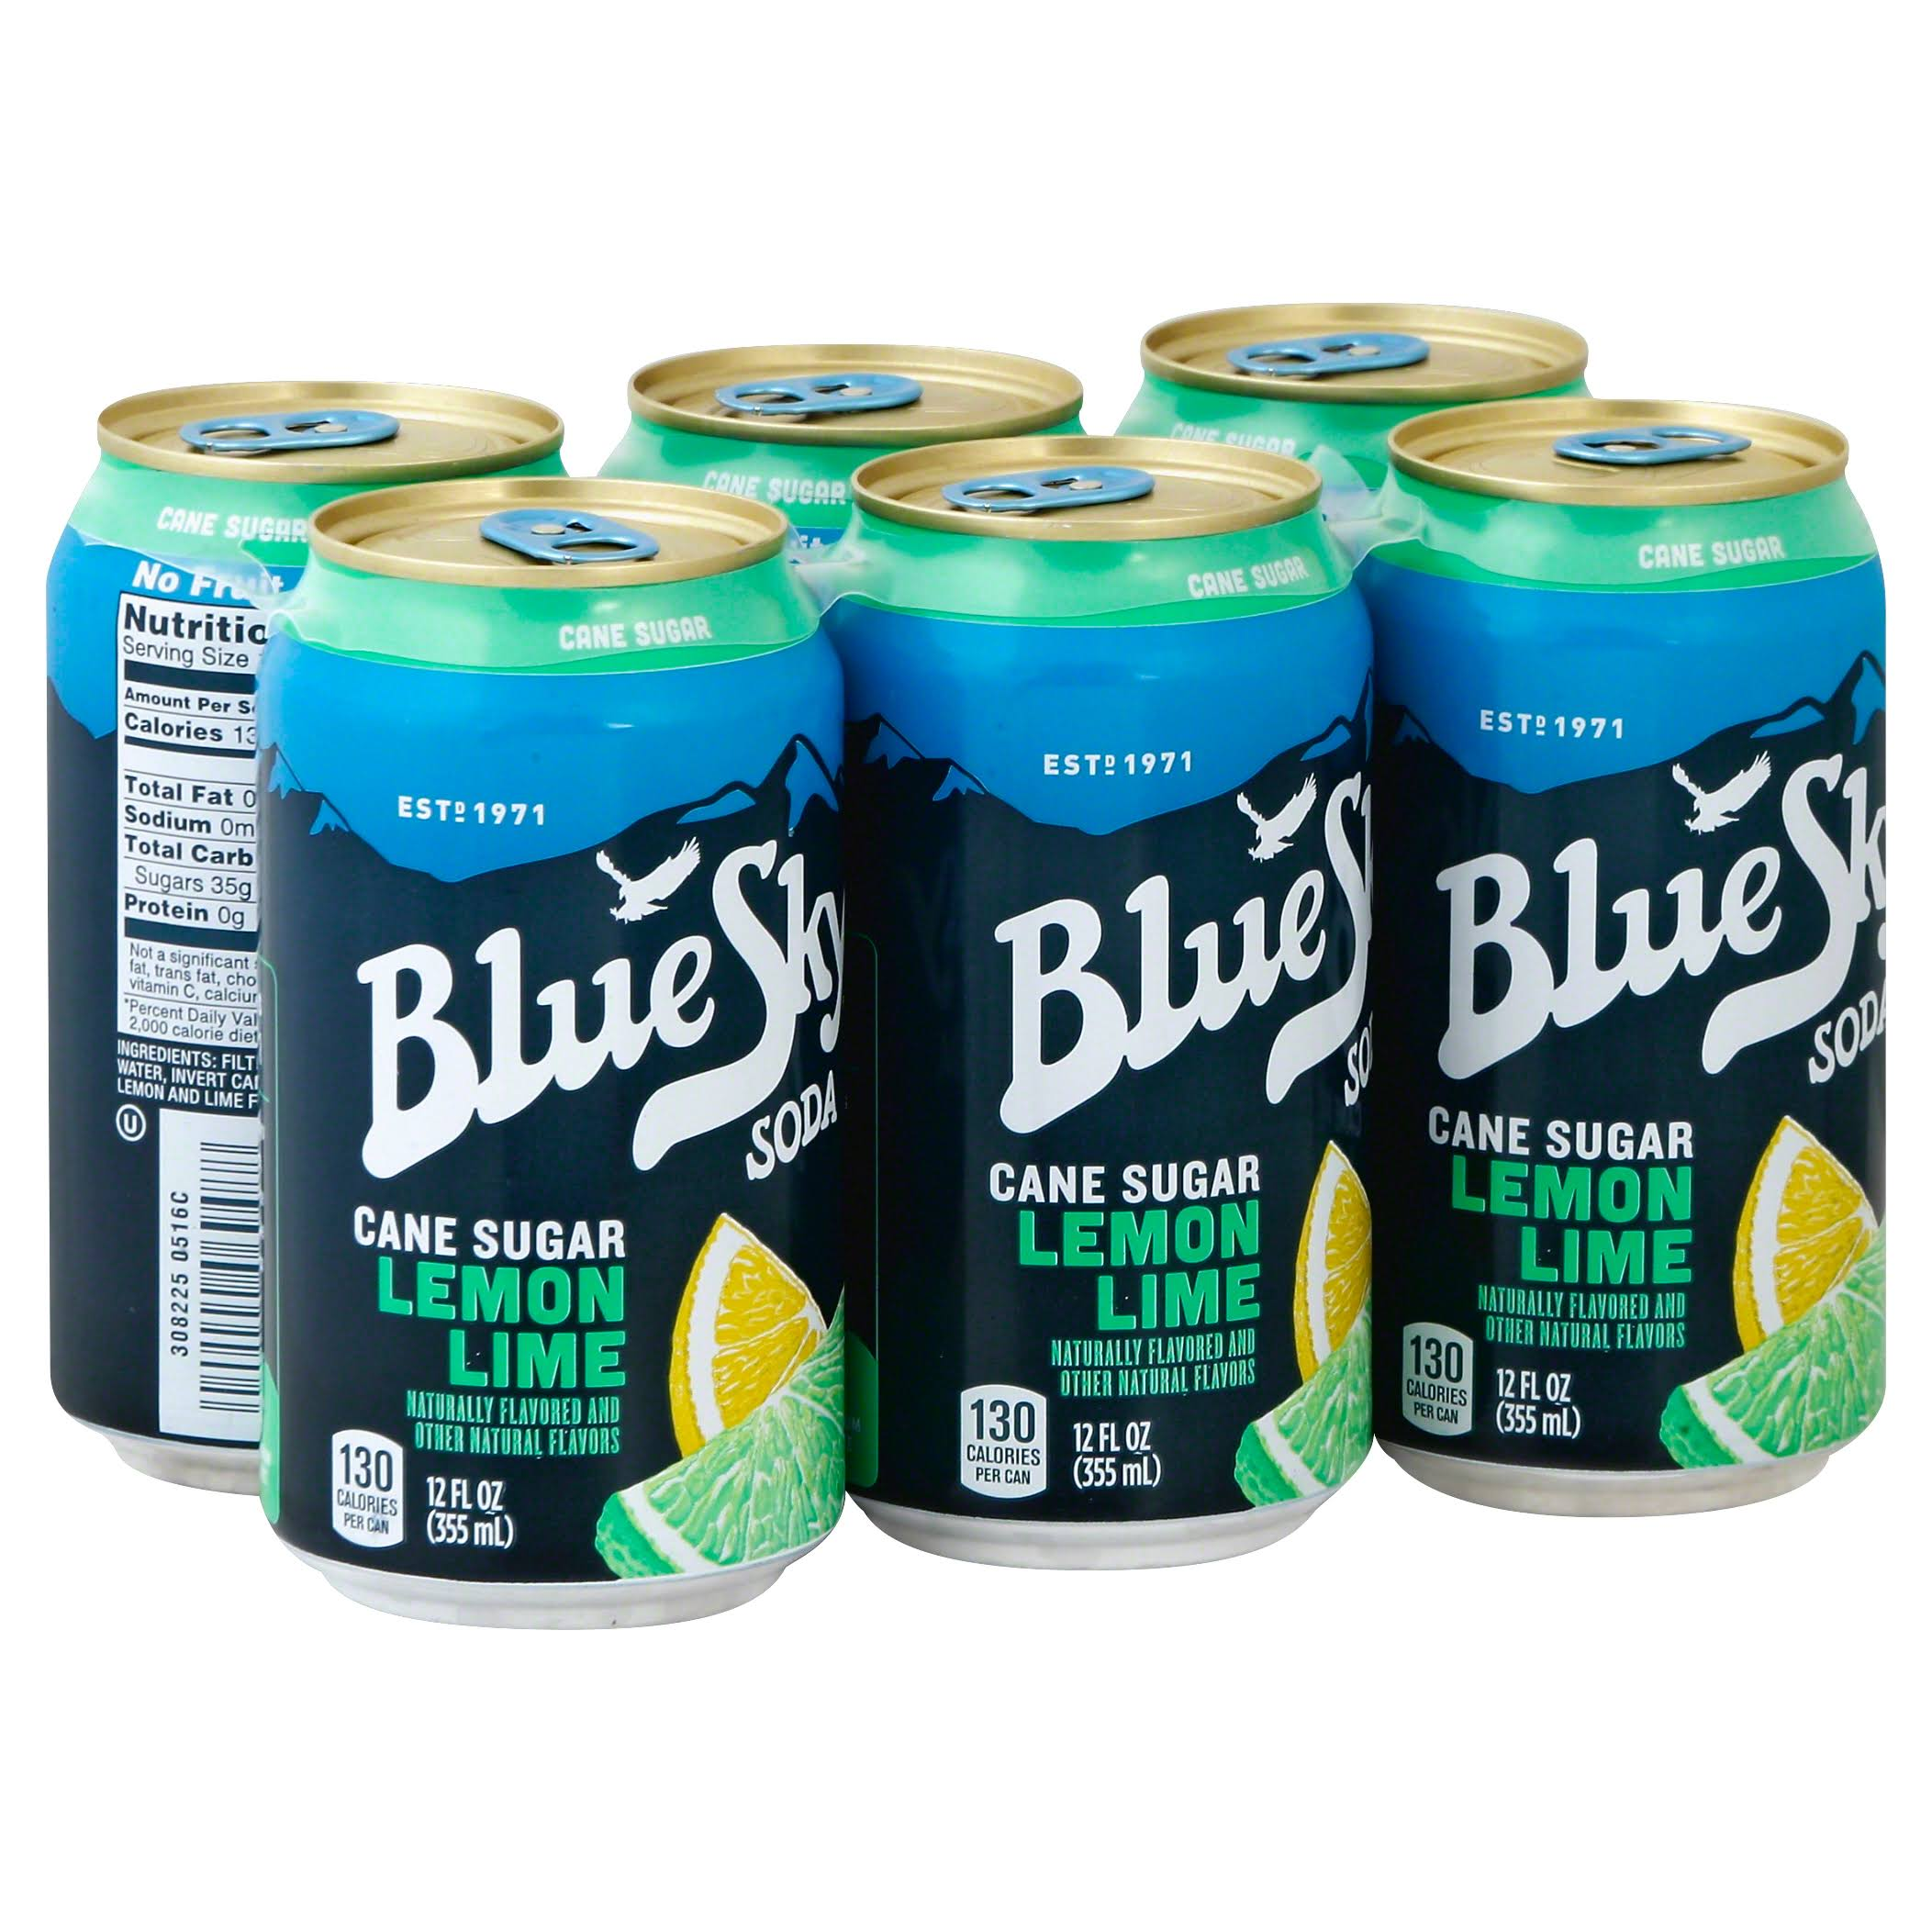 Blue Sky Soda, Lemon Lime - 6 pack, 12 fl oz cans